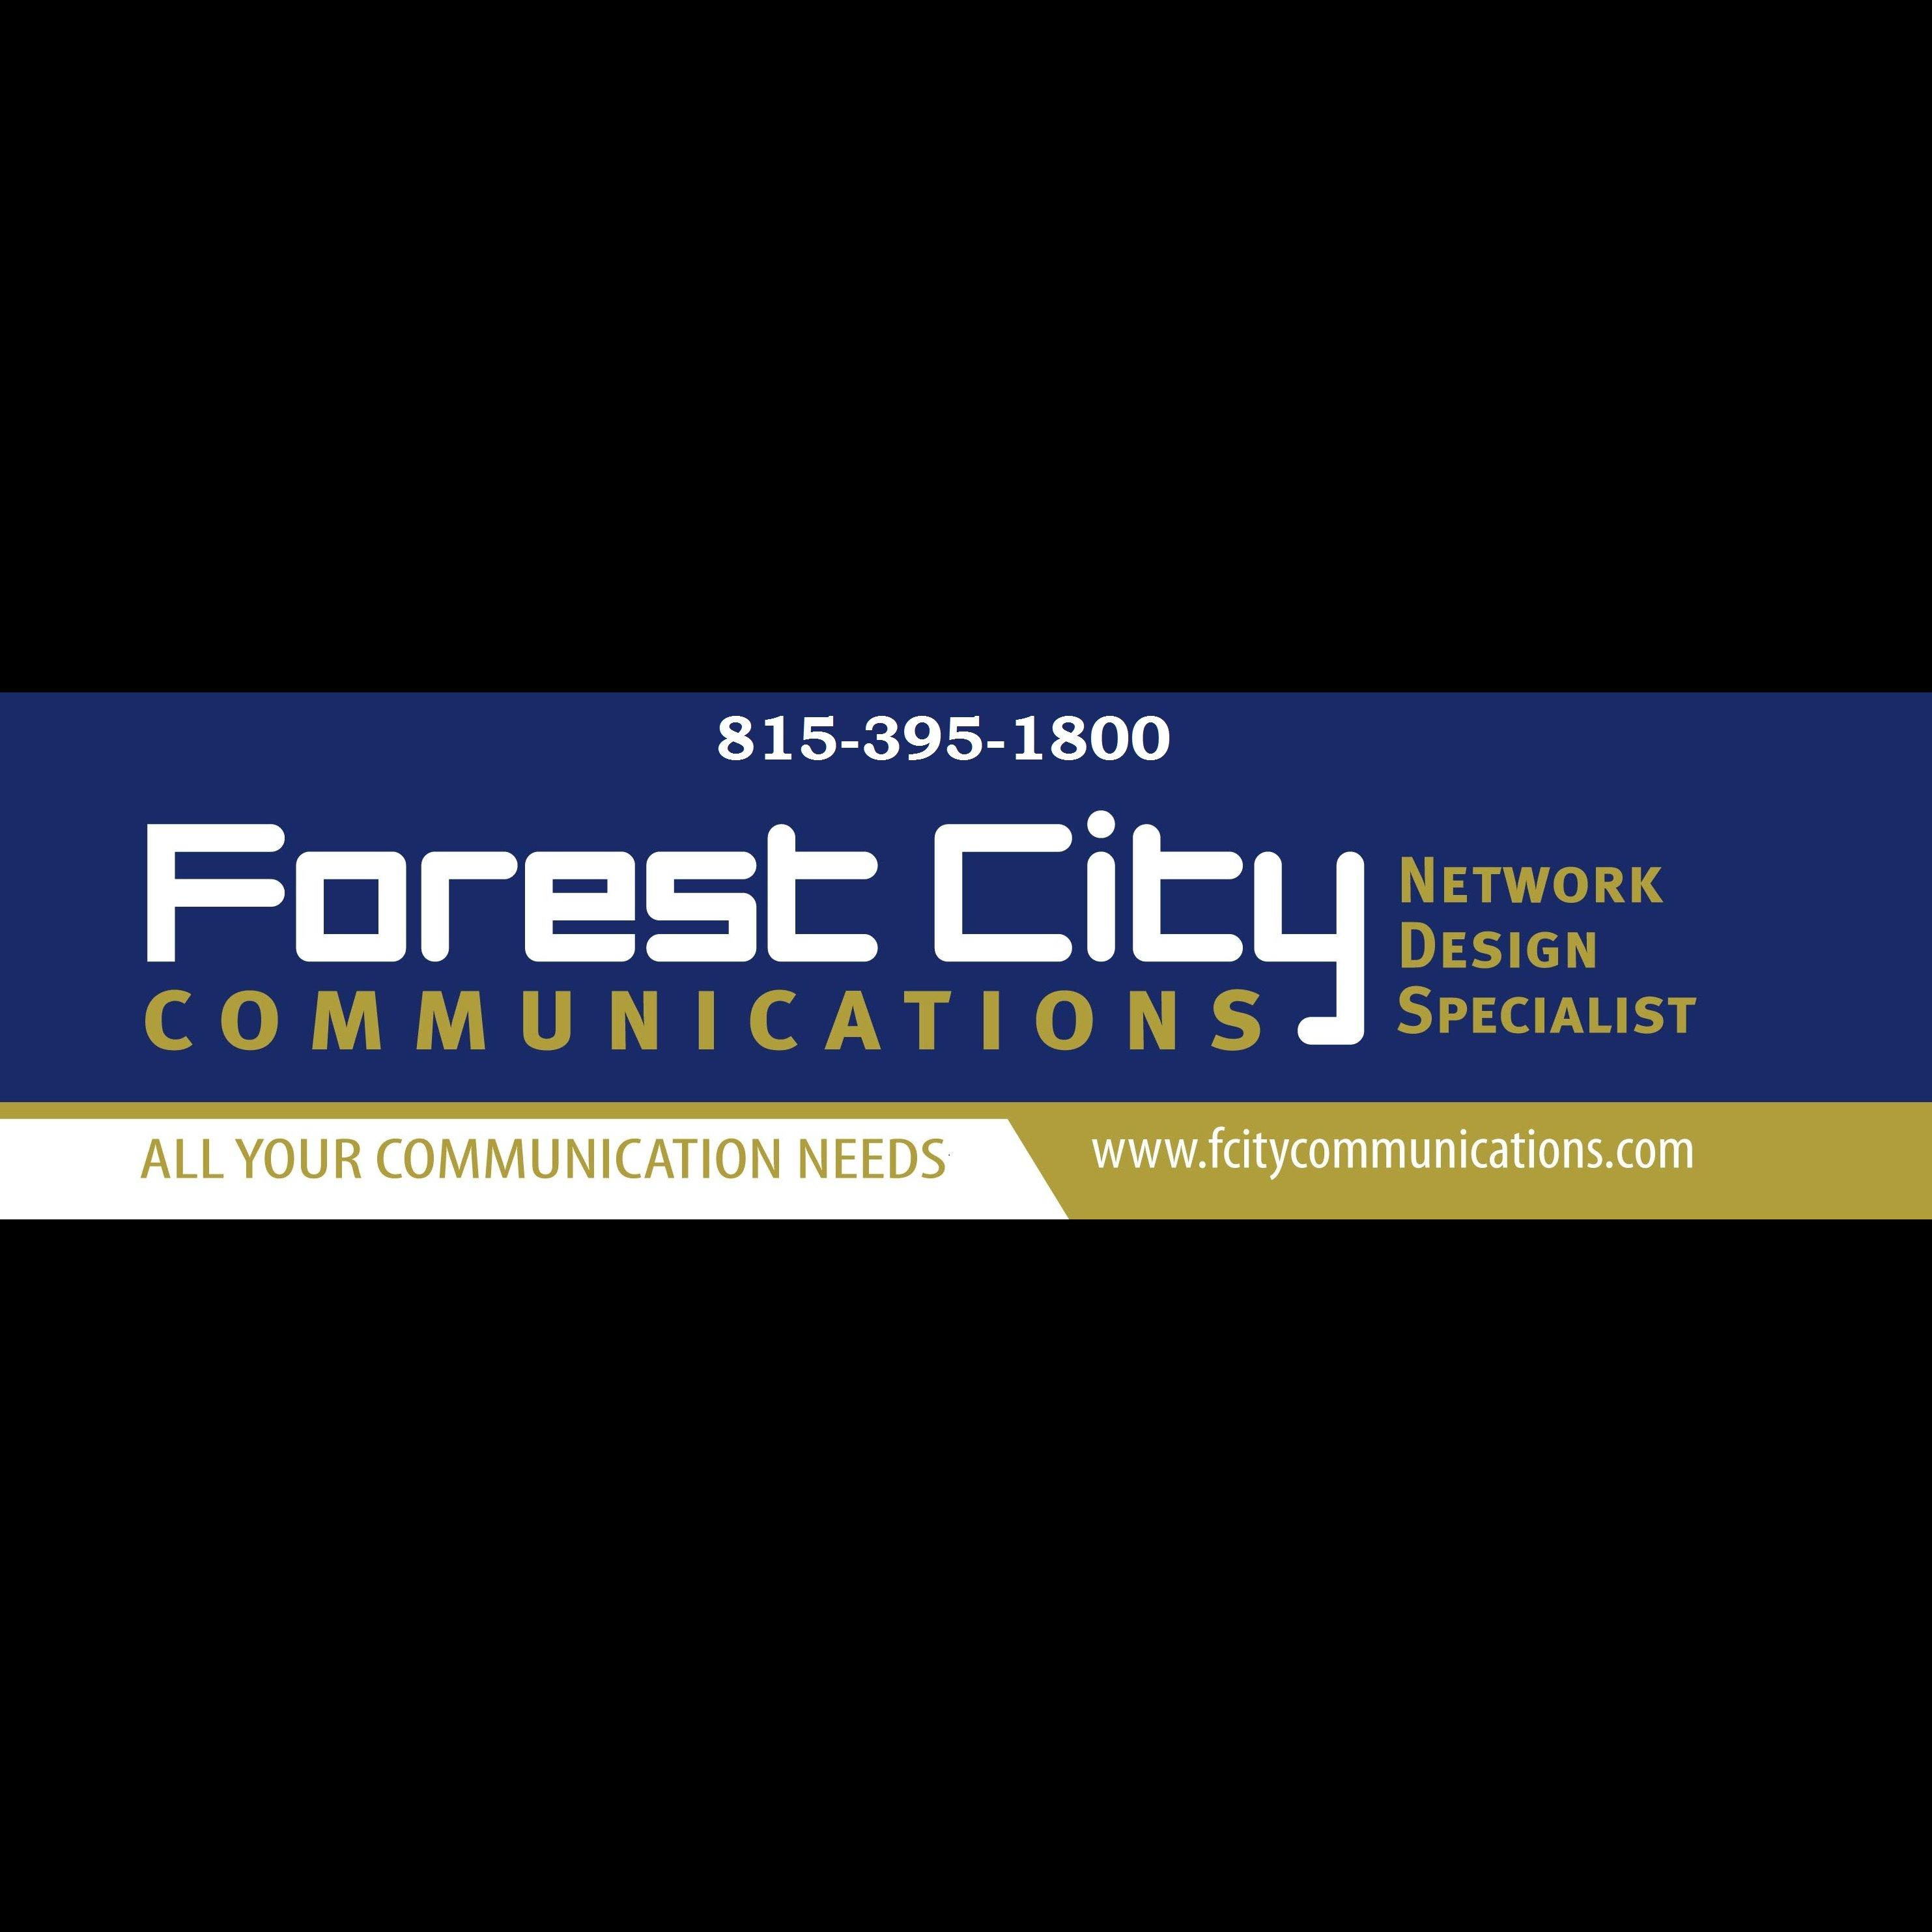 Forest City Communications